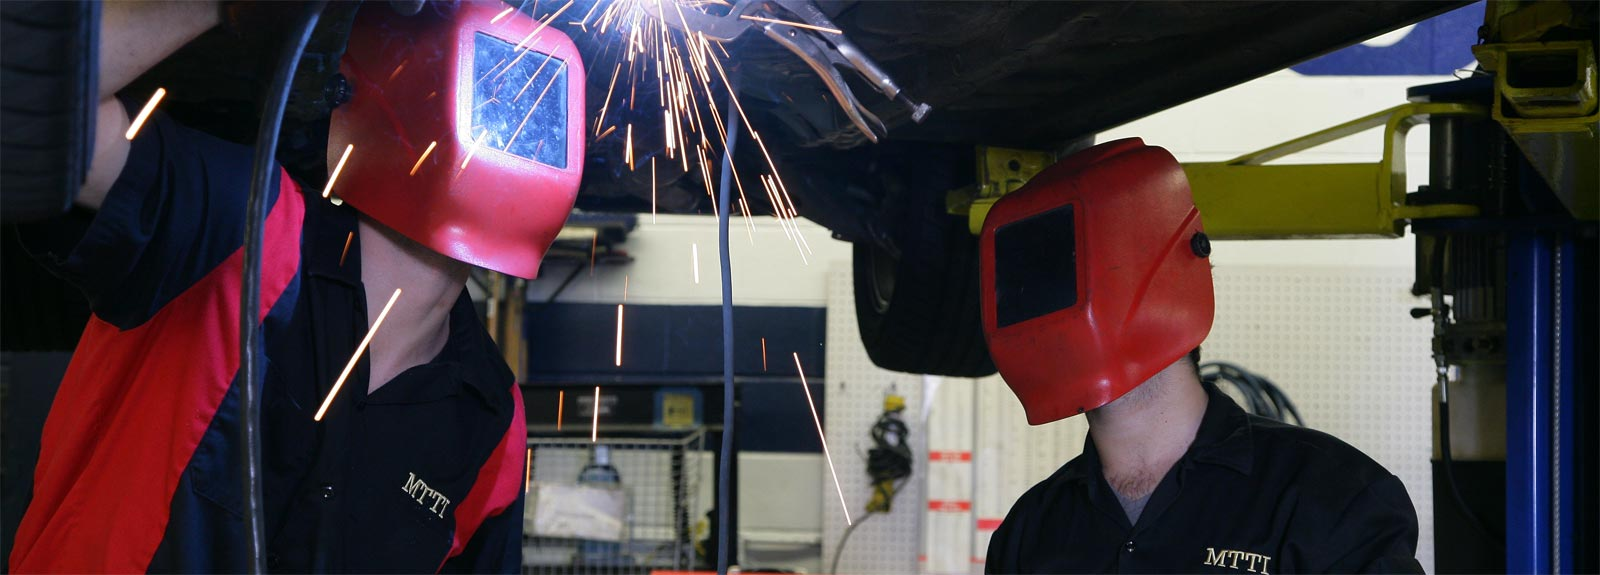 Sparks fly as MTTI Auto Mechanic Instructor and student are welding the underside of a car on a lift.